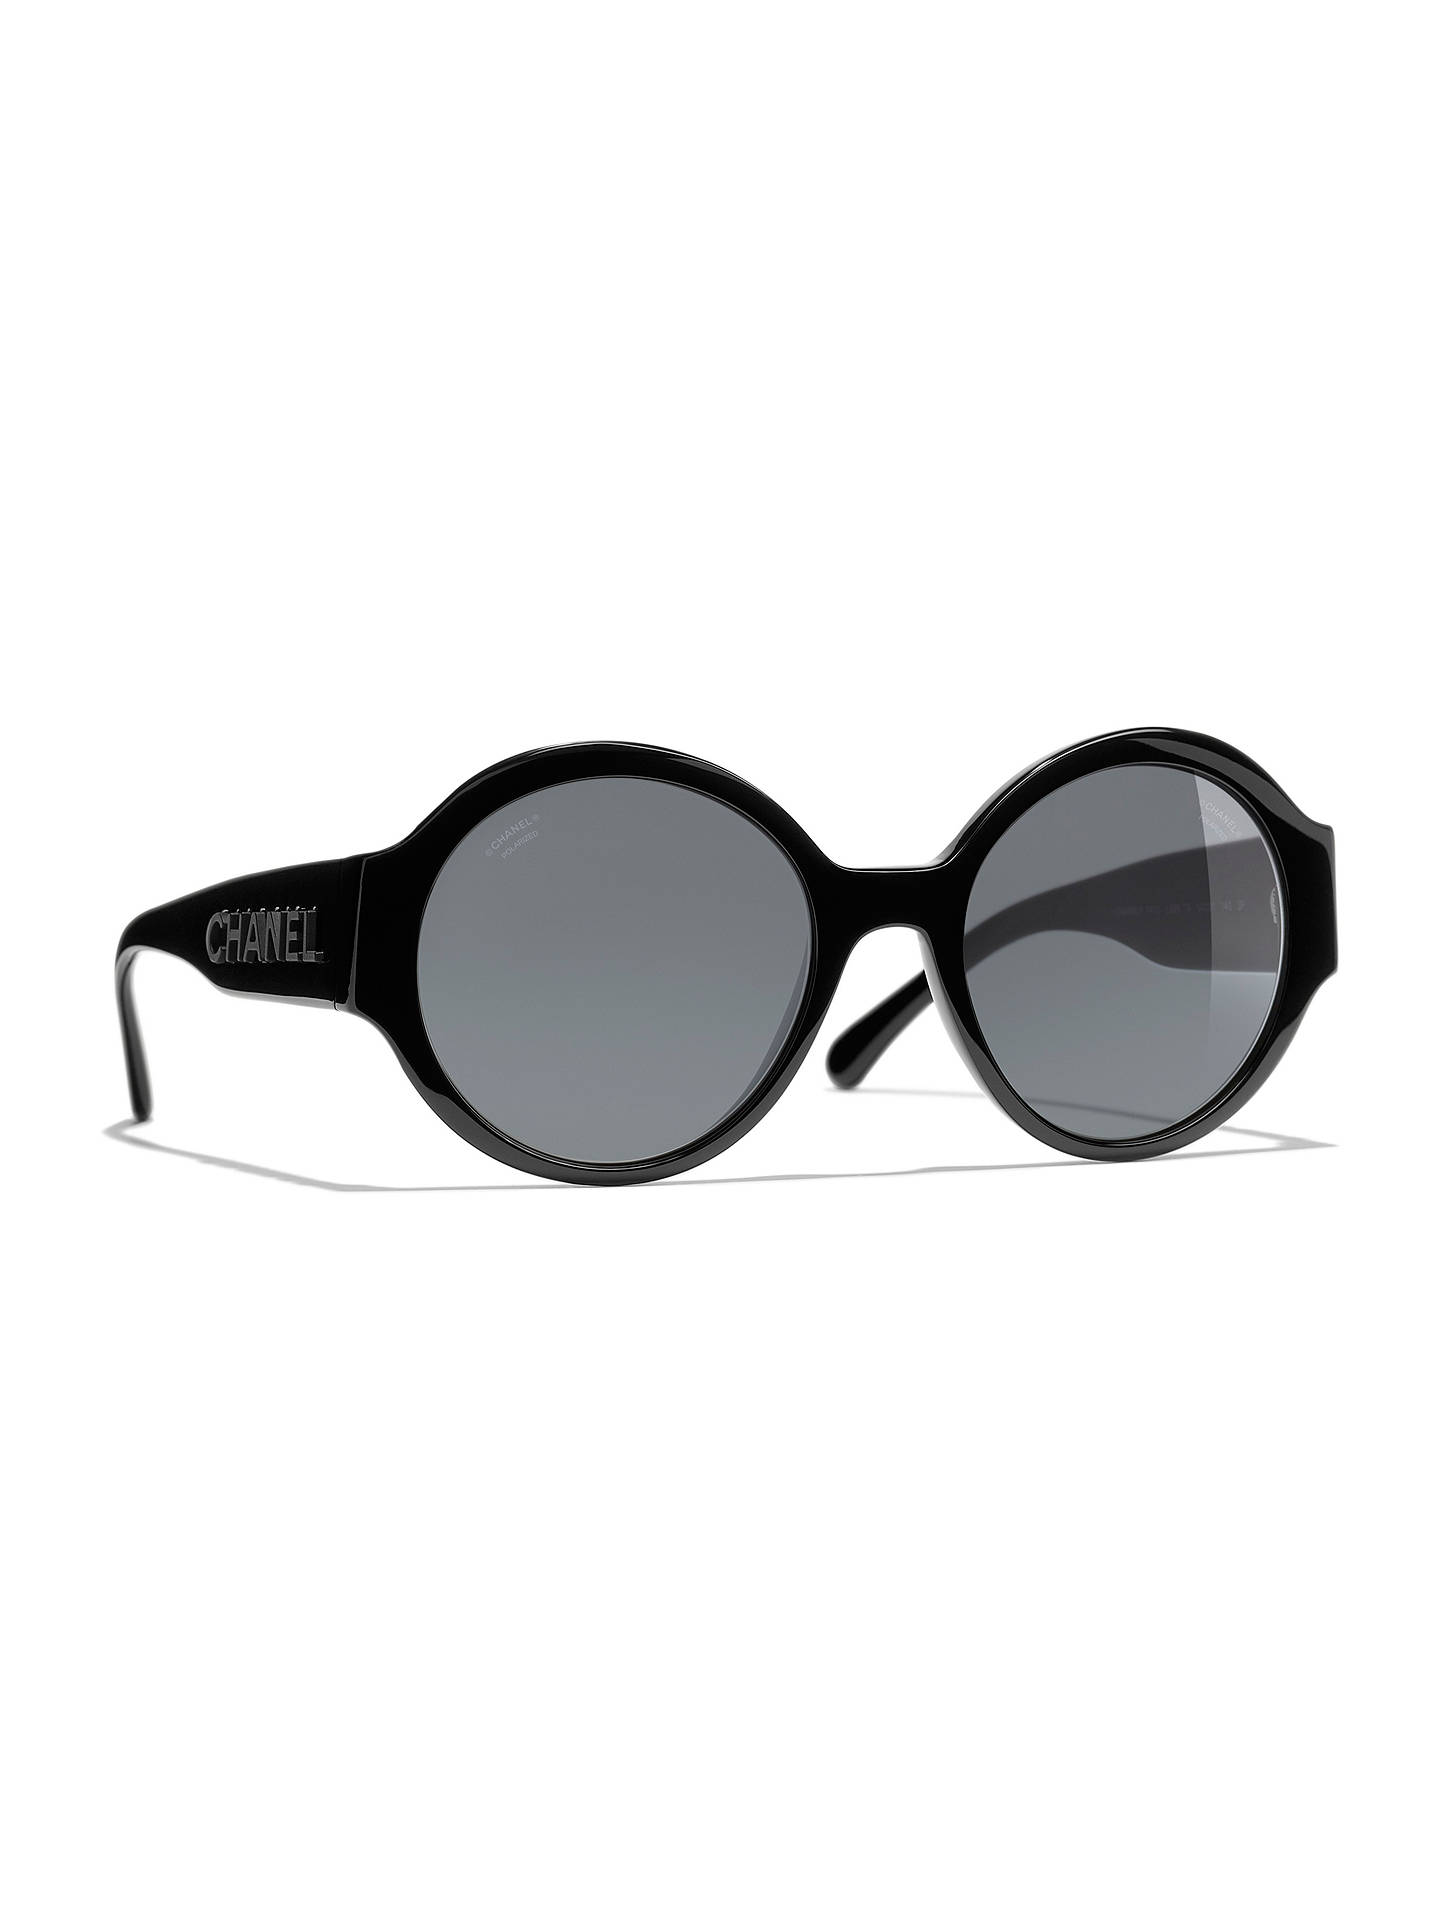 33885a53e5ca Buy CHANEL Oval Sunglasses CH5410 Black Grey Online at johnlewis.com ...